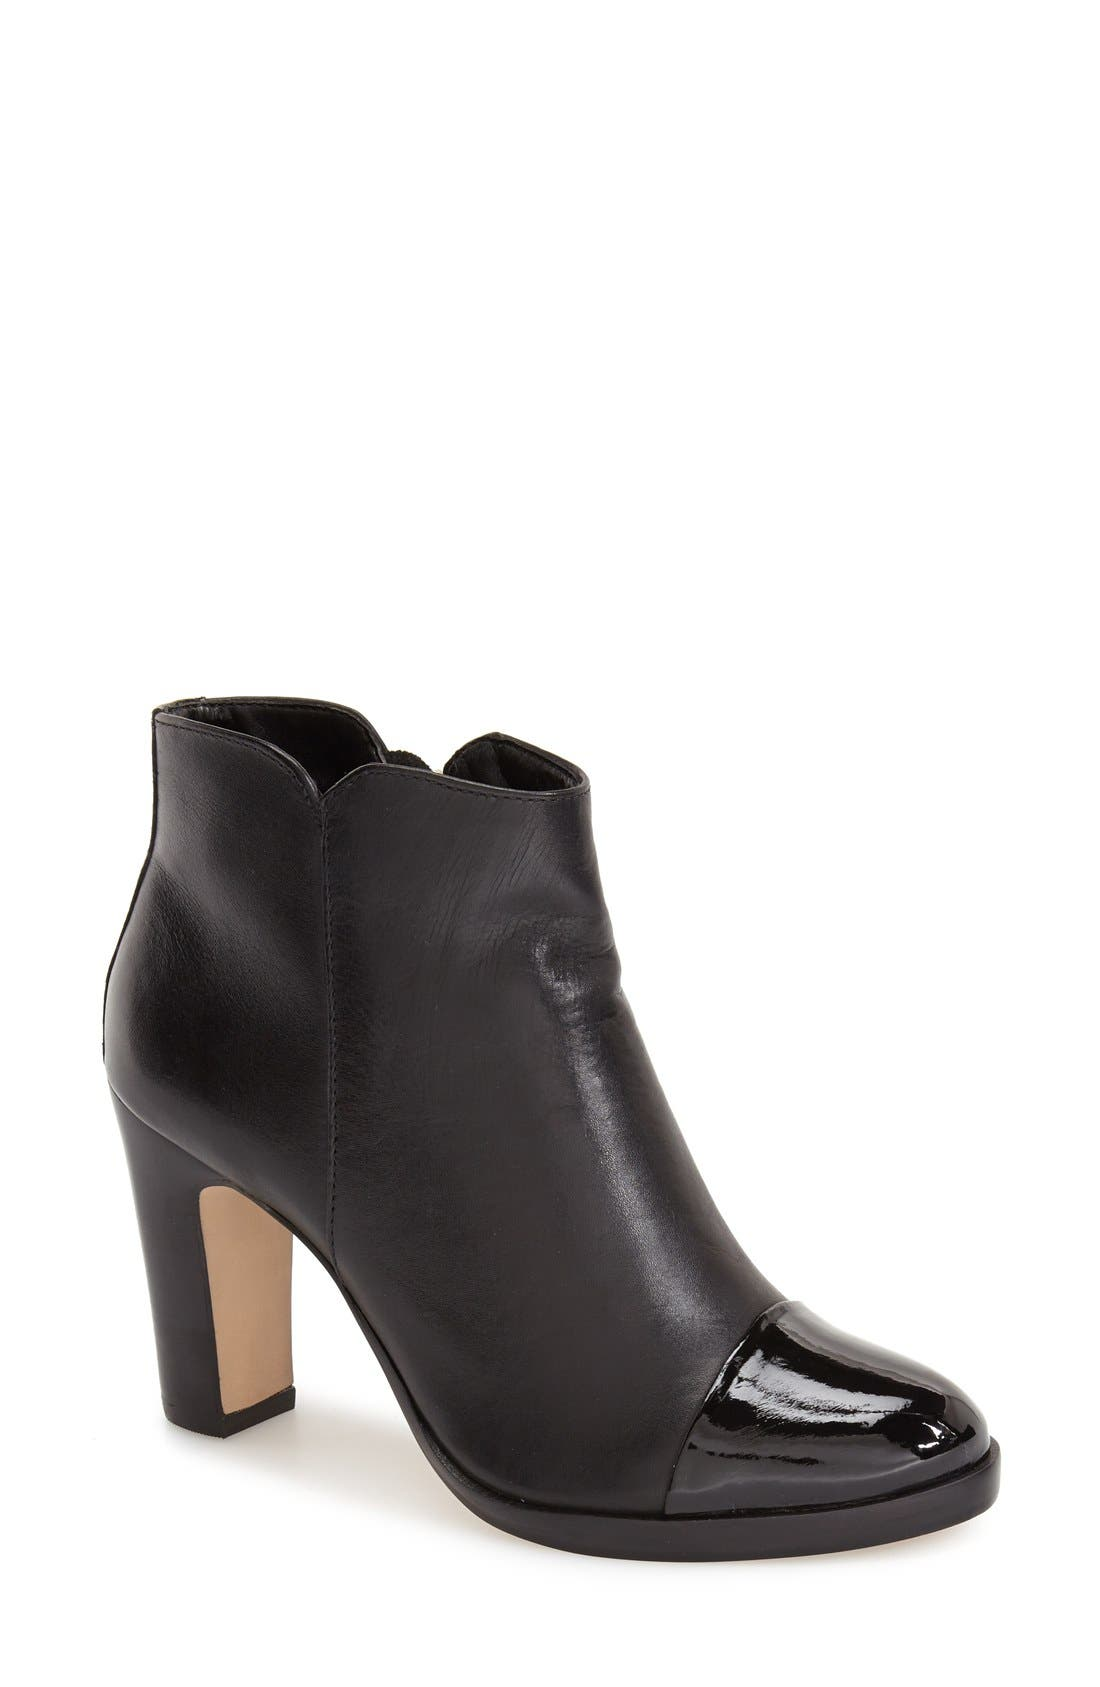 Alternate Image 1 Selected - Dune London 'Olly' Bootie (Women)